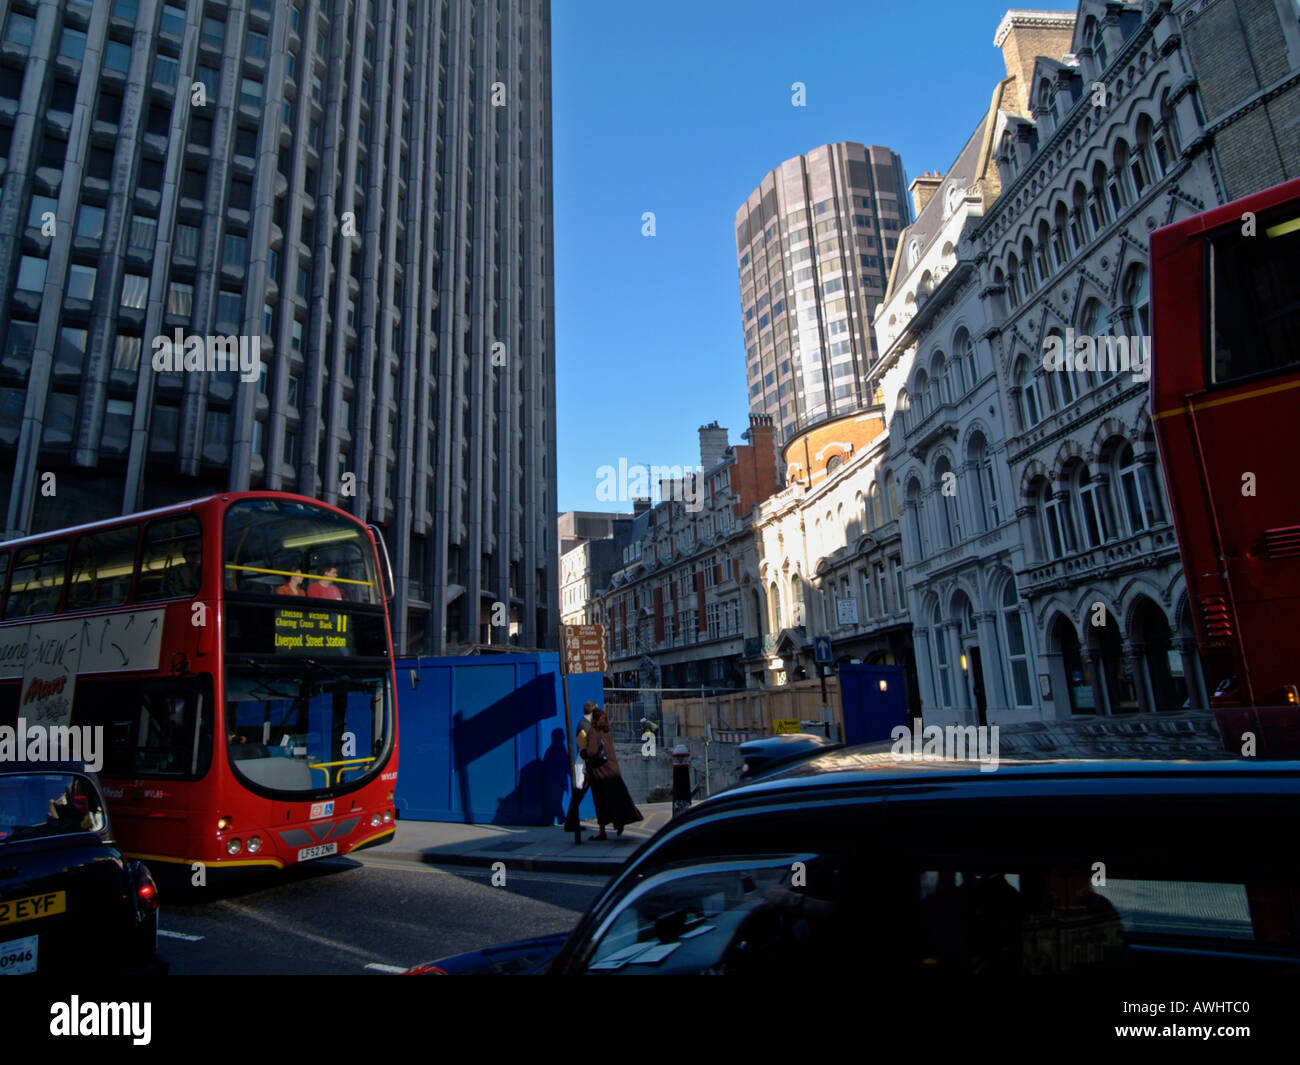 Heavy traffic and construction work in the heart of the city near Bank underground station London UK Stock Photo